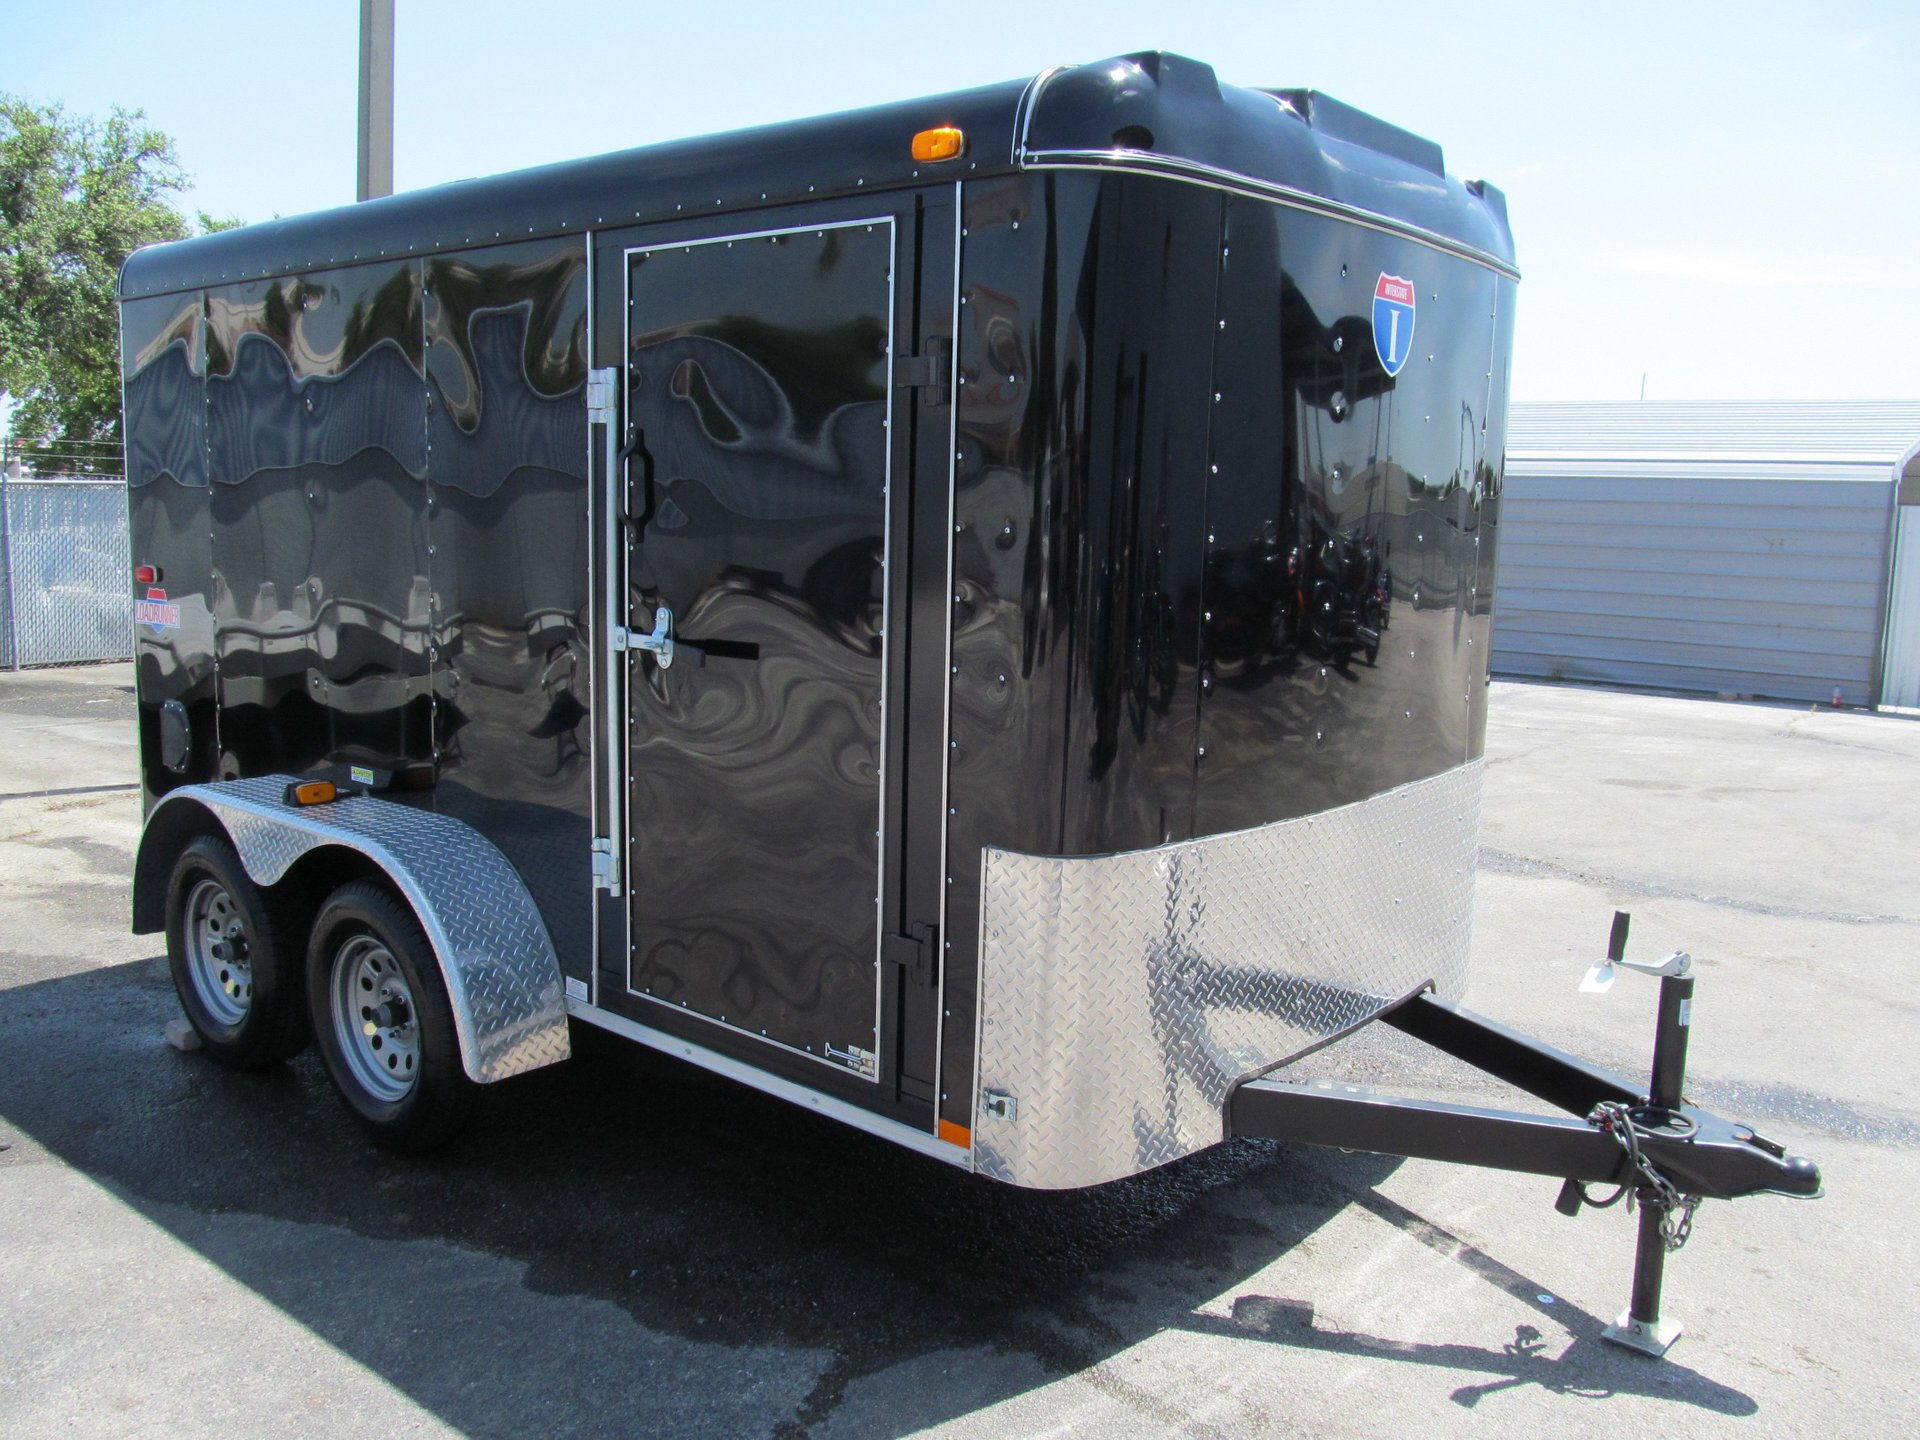 2014 interstate 2 axle motorcycle trailer